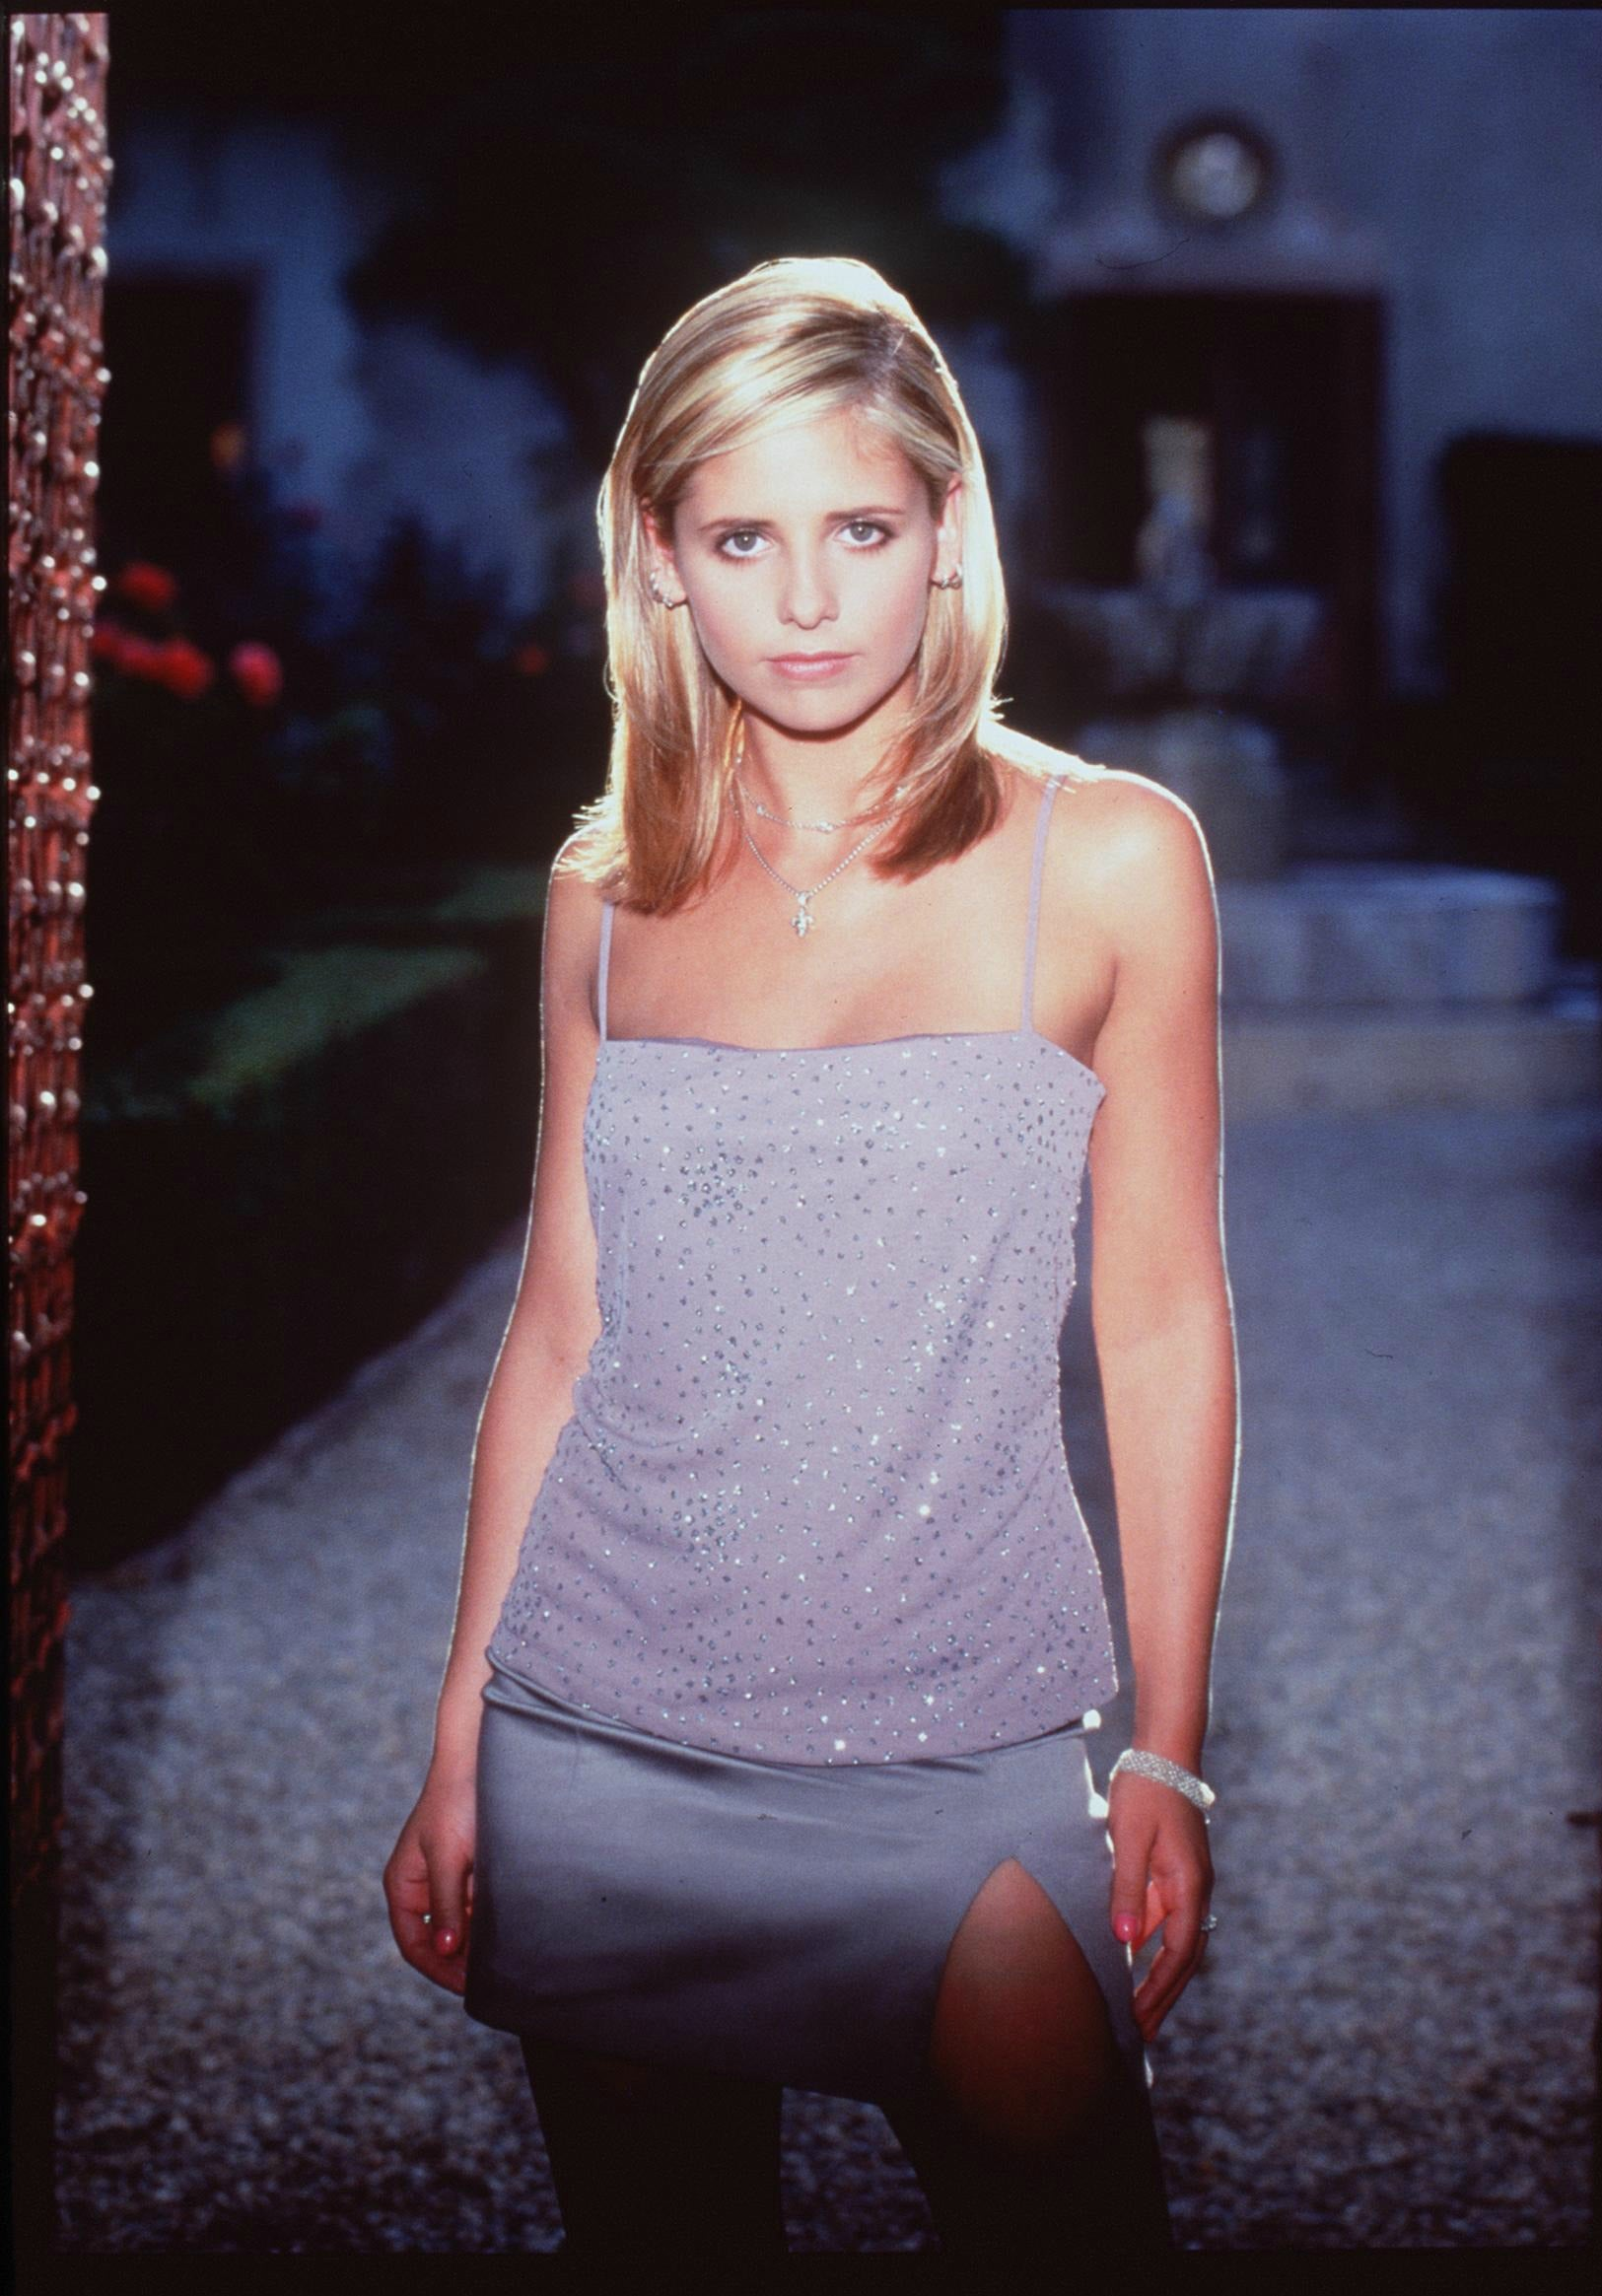 Commit sarah michelle gellar as hope, you